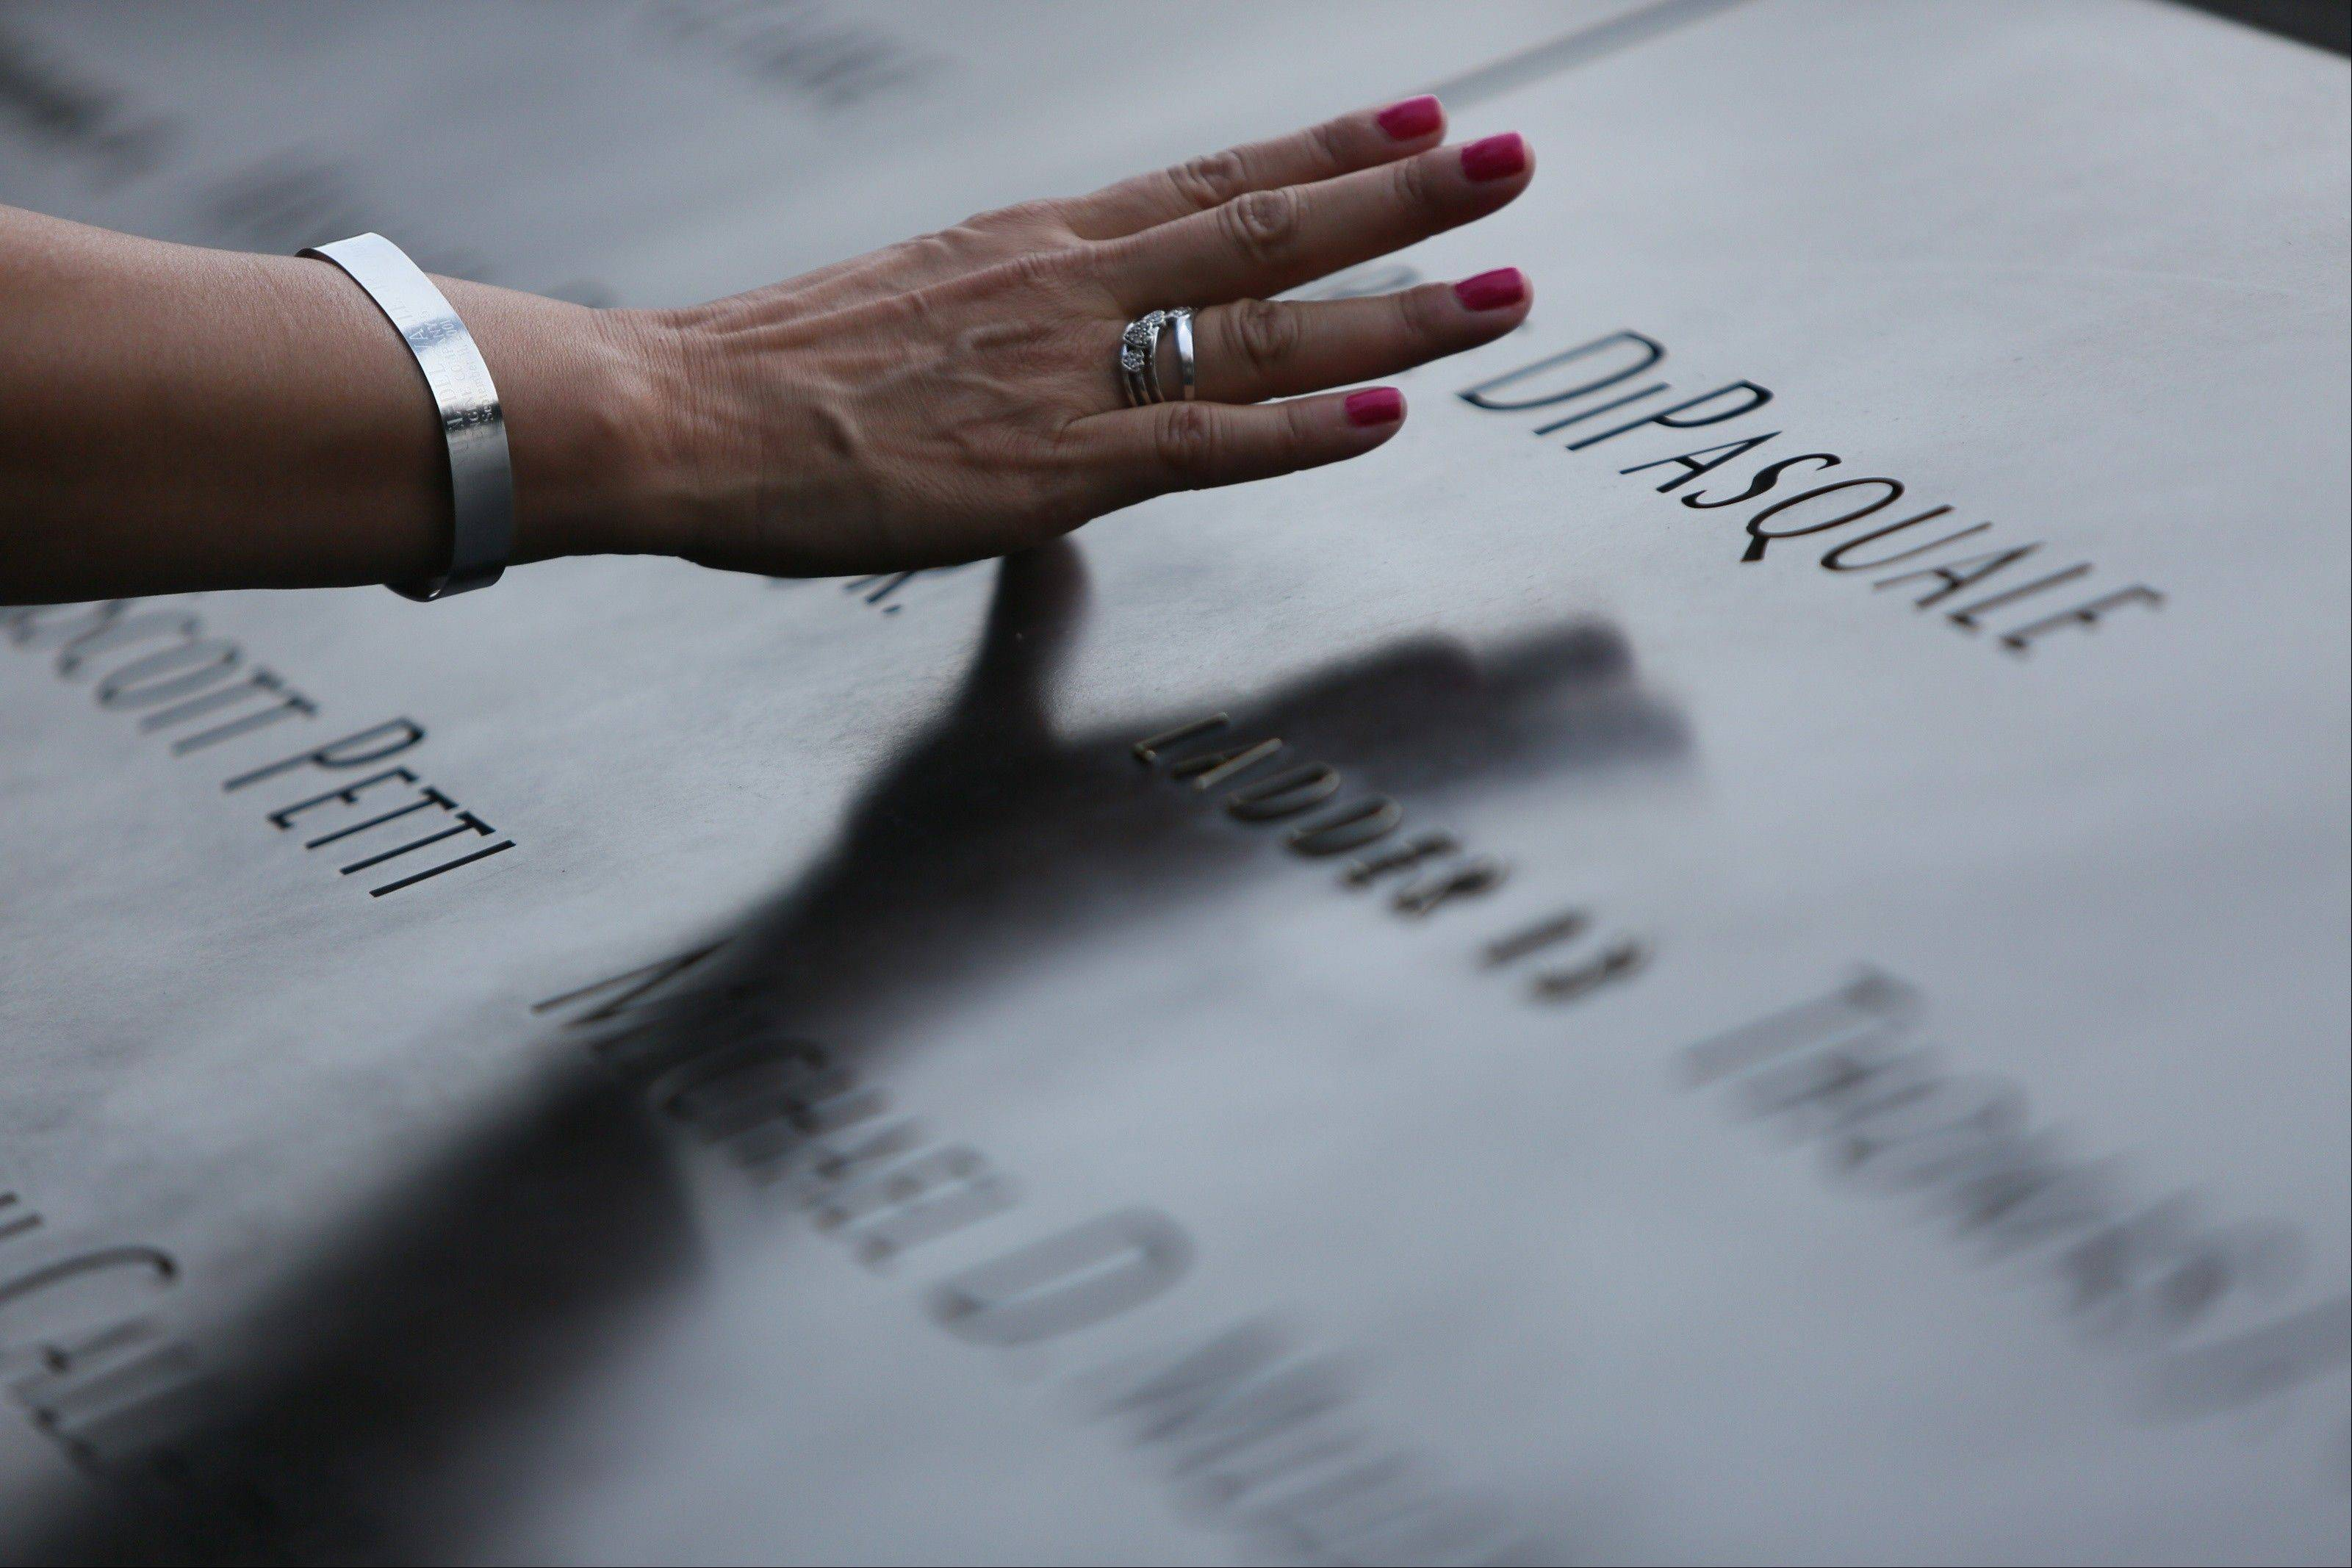 A woman touches the stone with names of the 9/11 victims at the Sept. 11 memorial during ceremonies marking the 12th anniversary of the attacks on the World Trade Center in New York, Wednesday, Sept. 11, 2013.